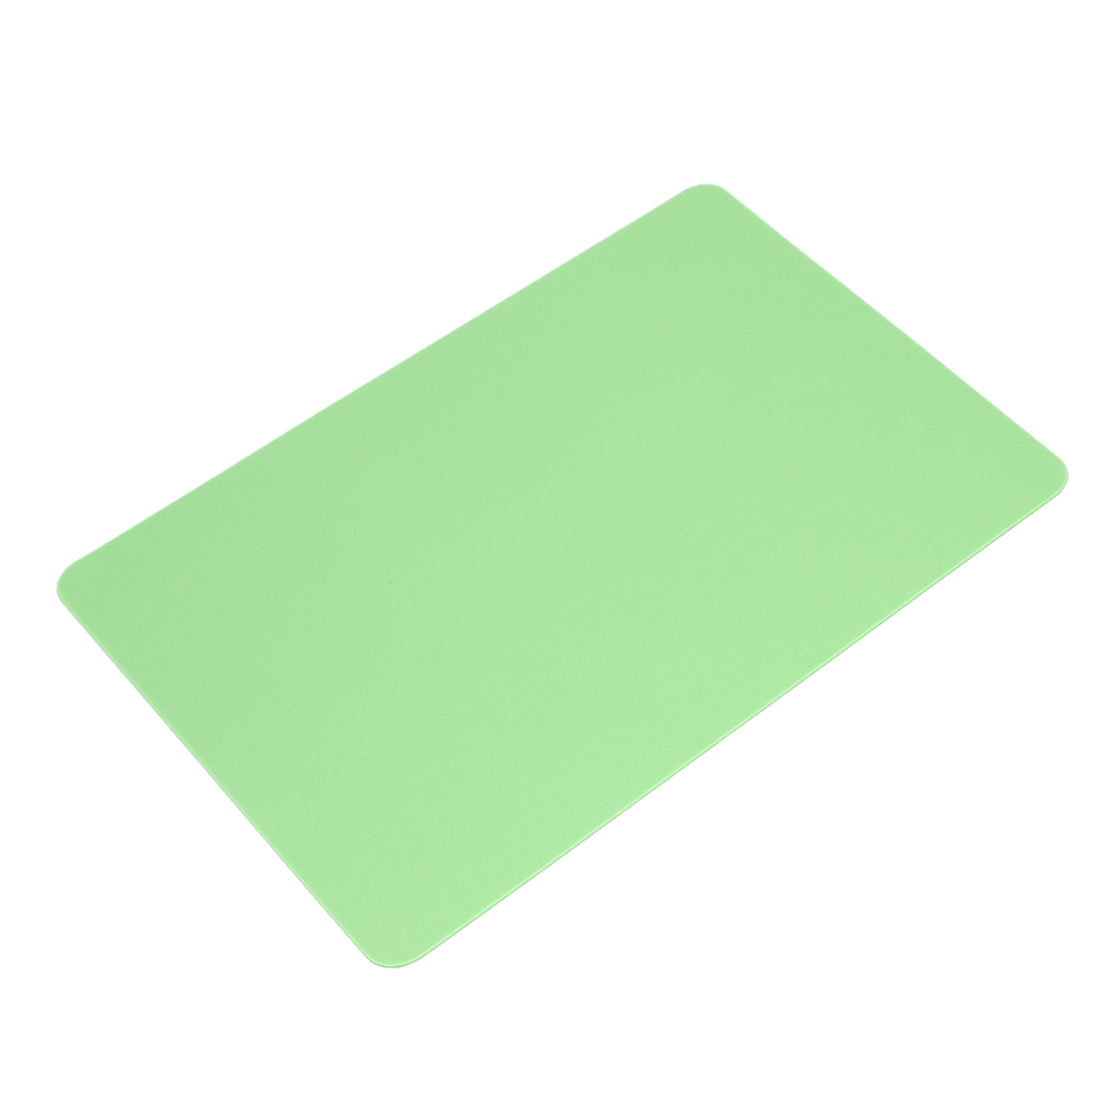 Laptop PC Computer Silicone Rectangle Nonslip Mouse Mice Pad Mat Mousepad Green